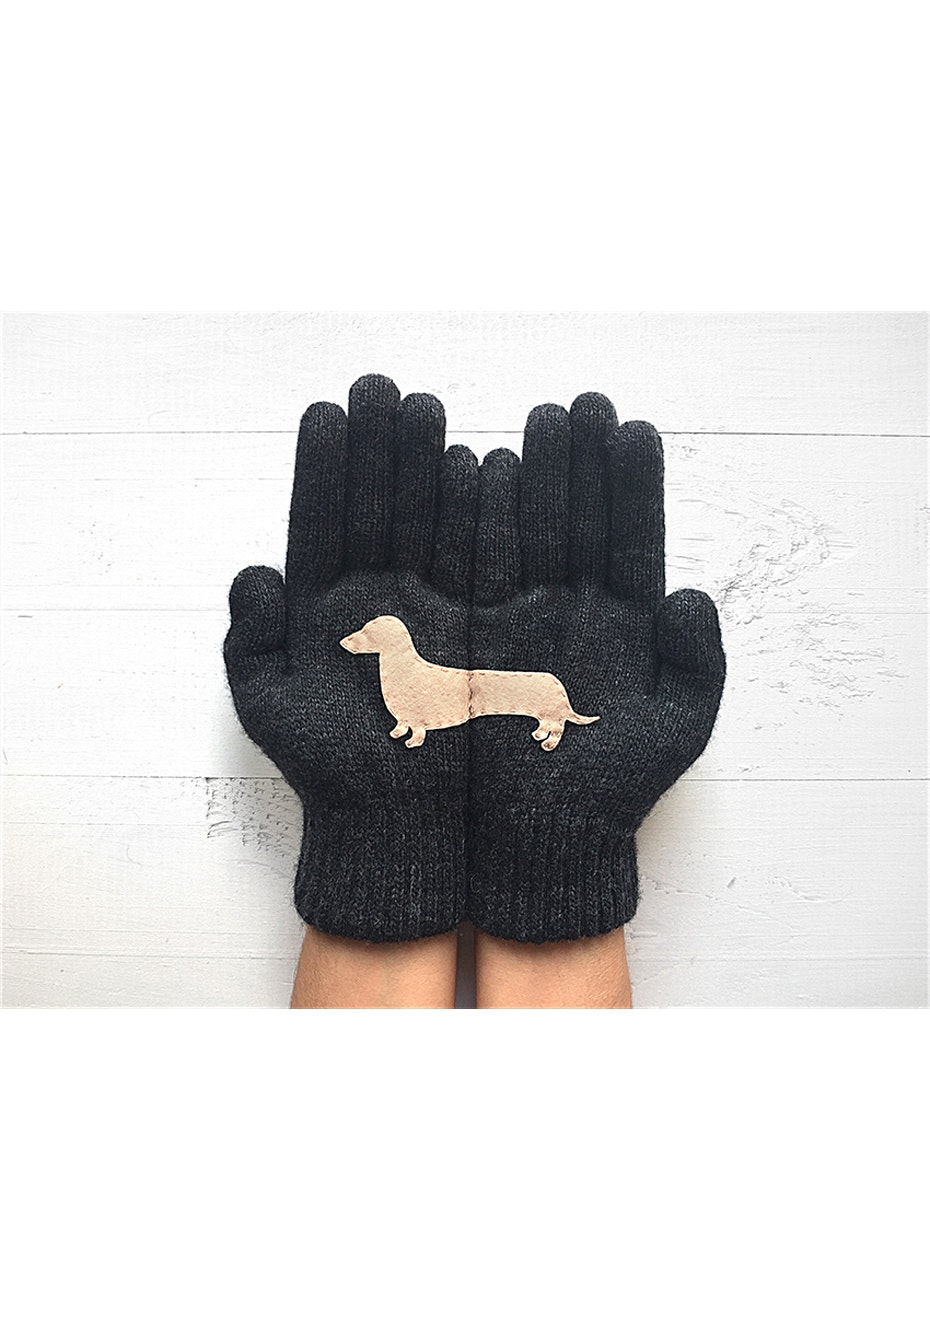 Dachshund Gloves - Charcoal/Nude